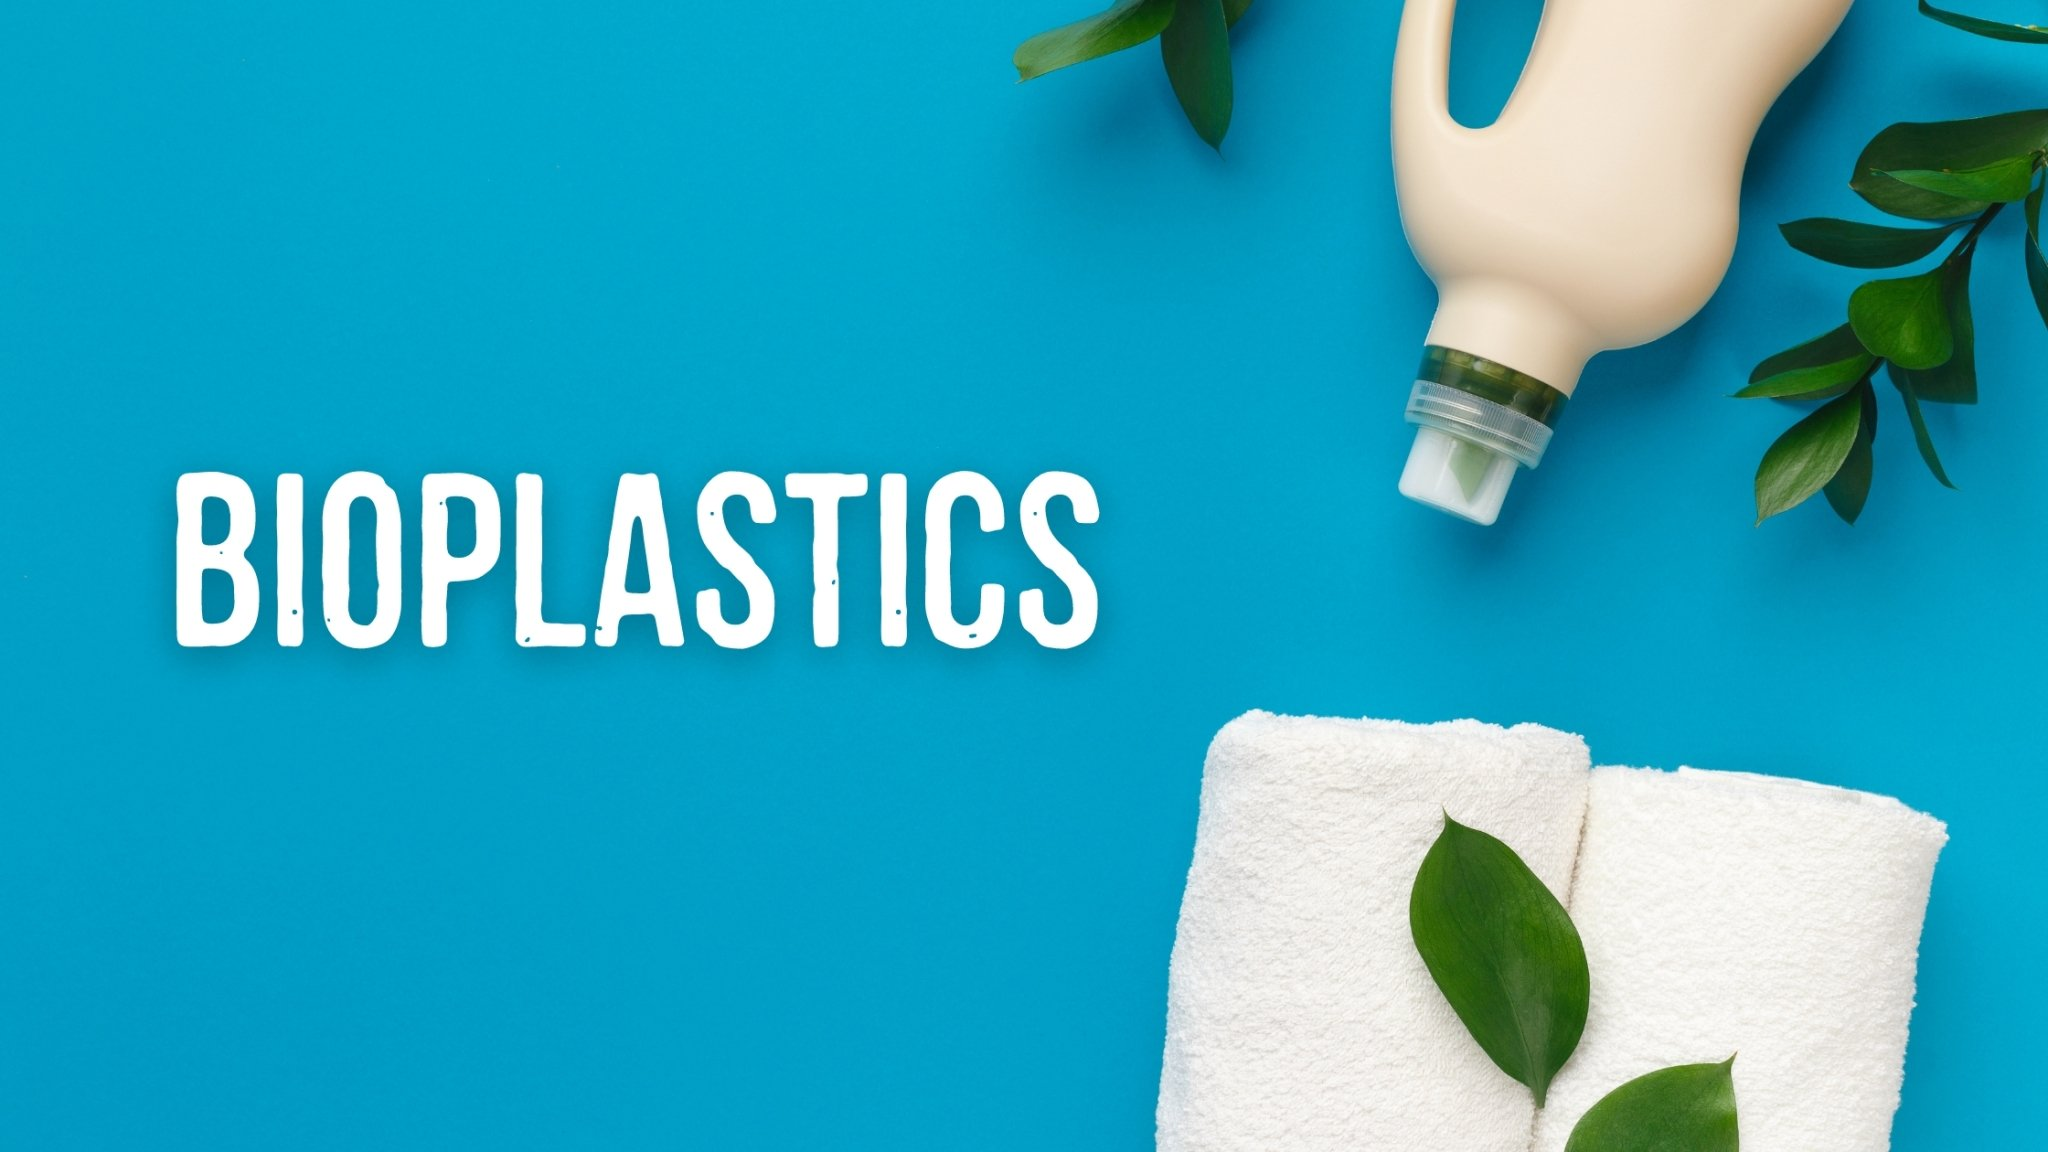 Are bioplastics better for the planet?